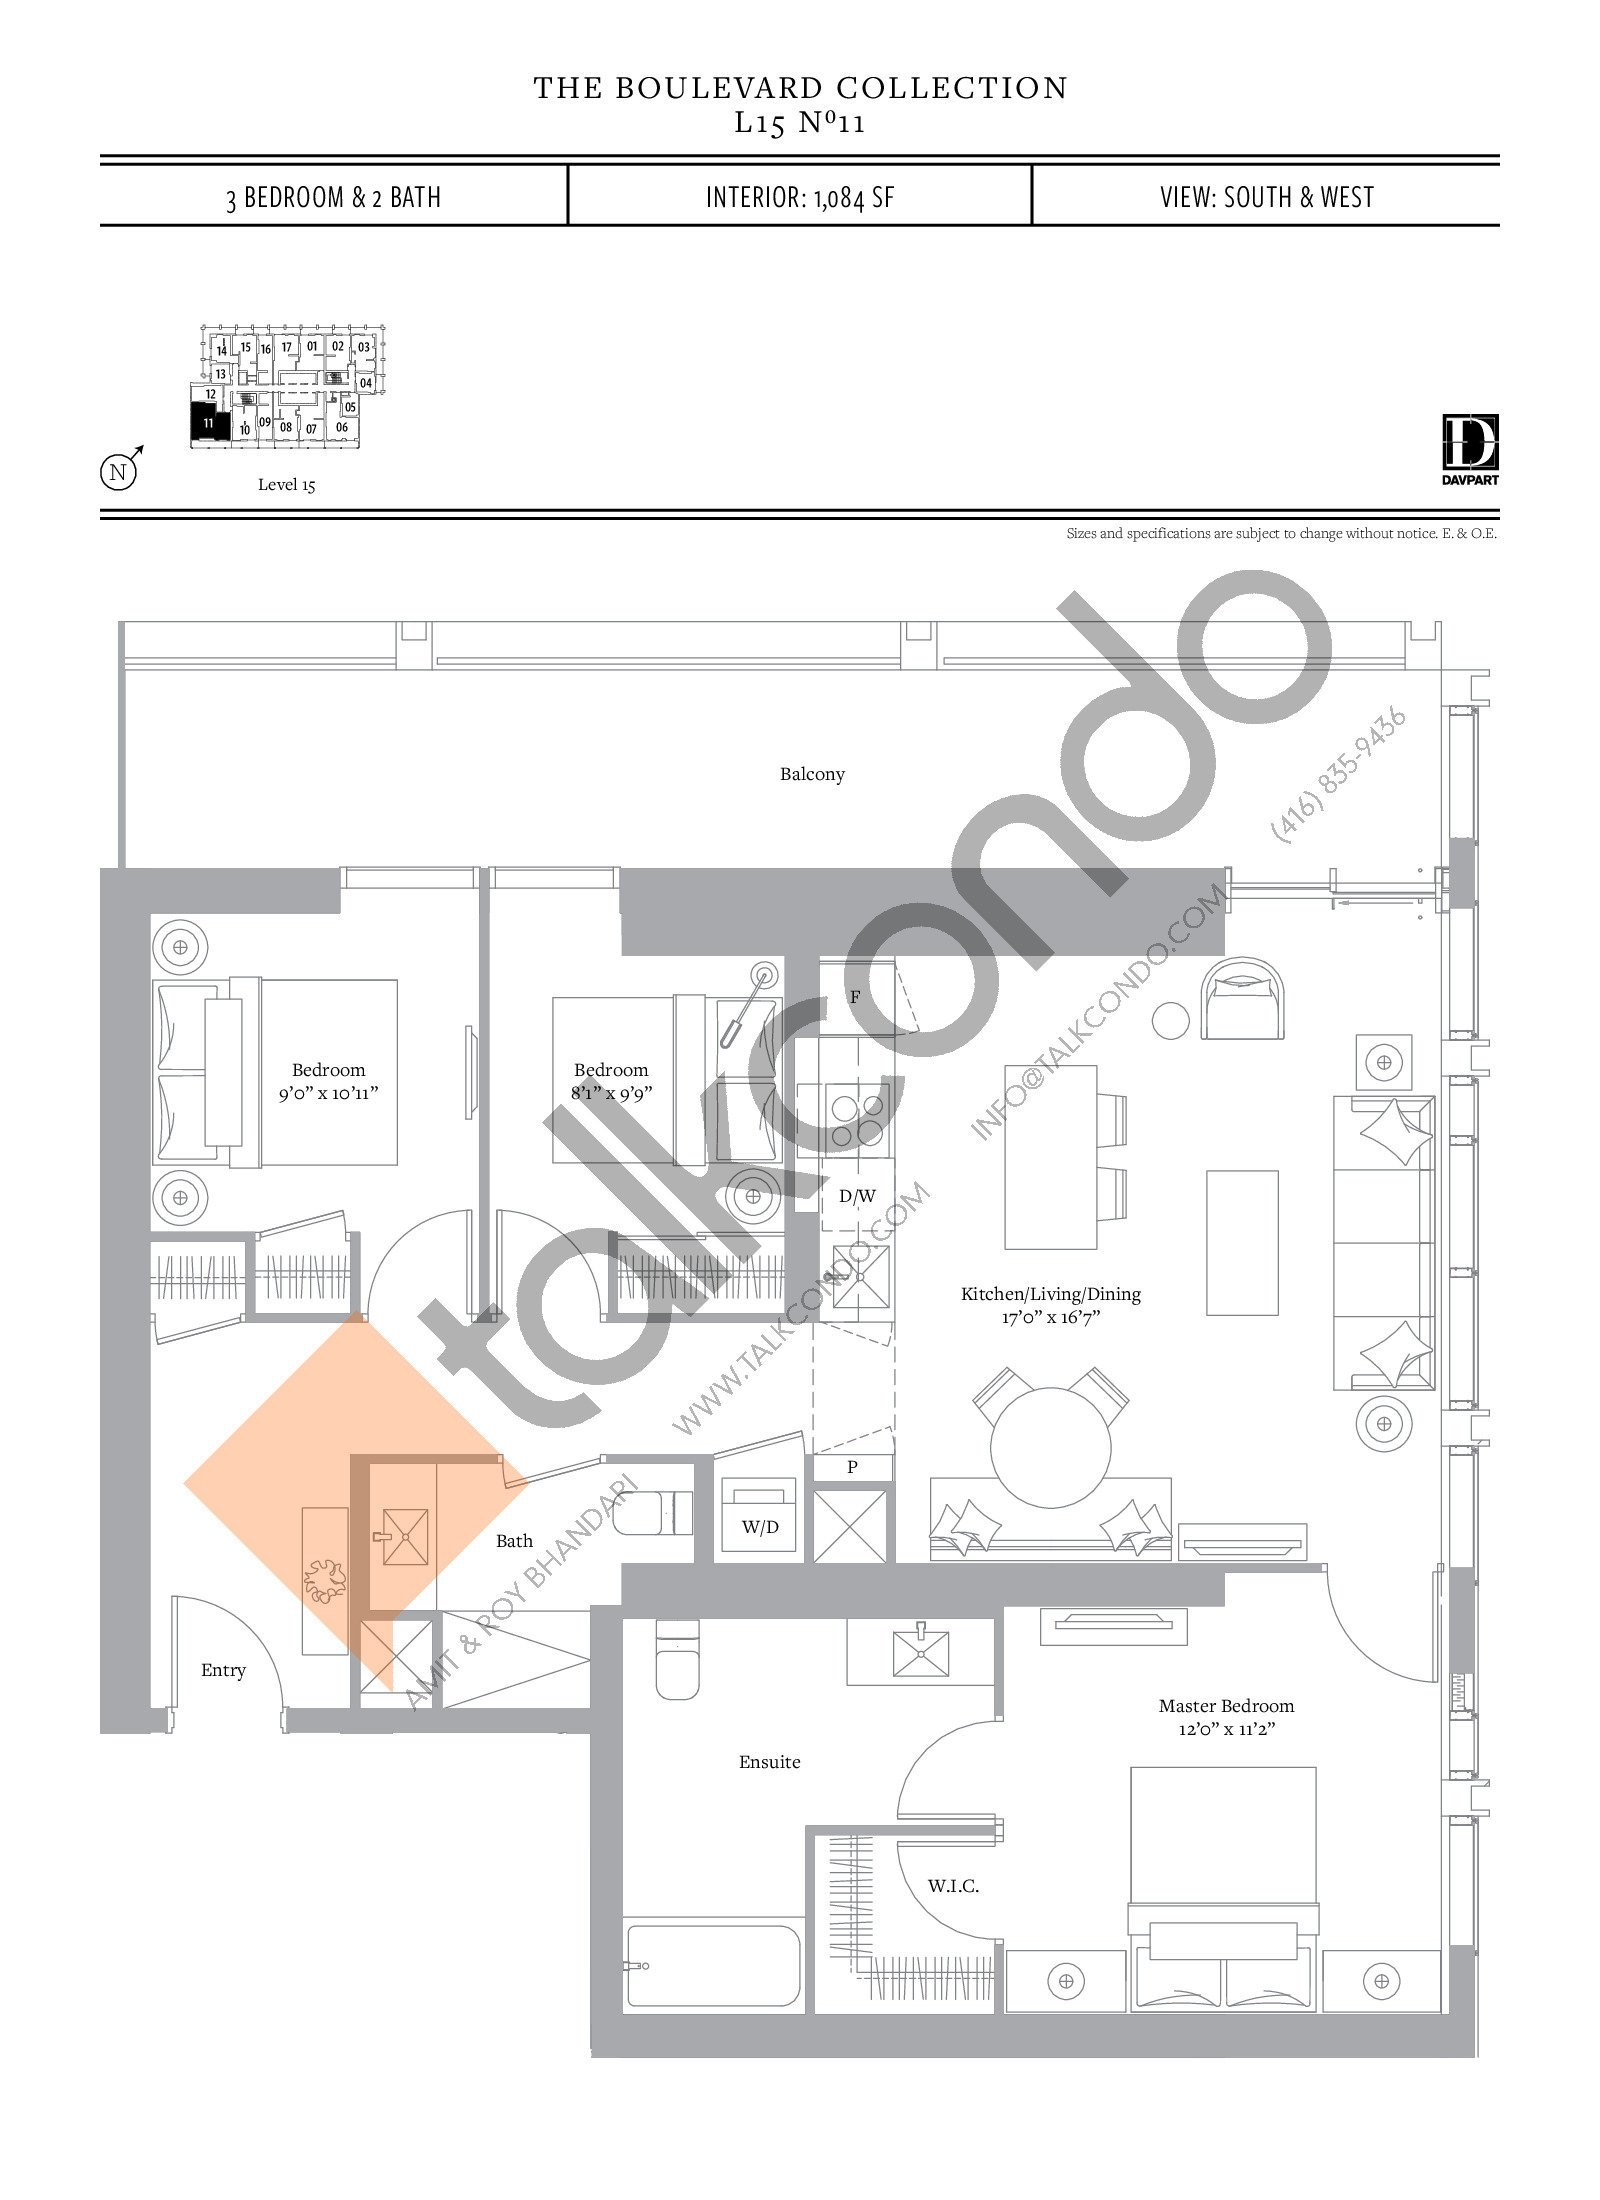 No 11 - The Boulevard Collection Floor Plan at The United Bldg. Condos - 1084 sq.ft